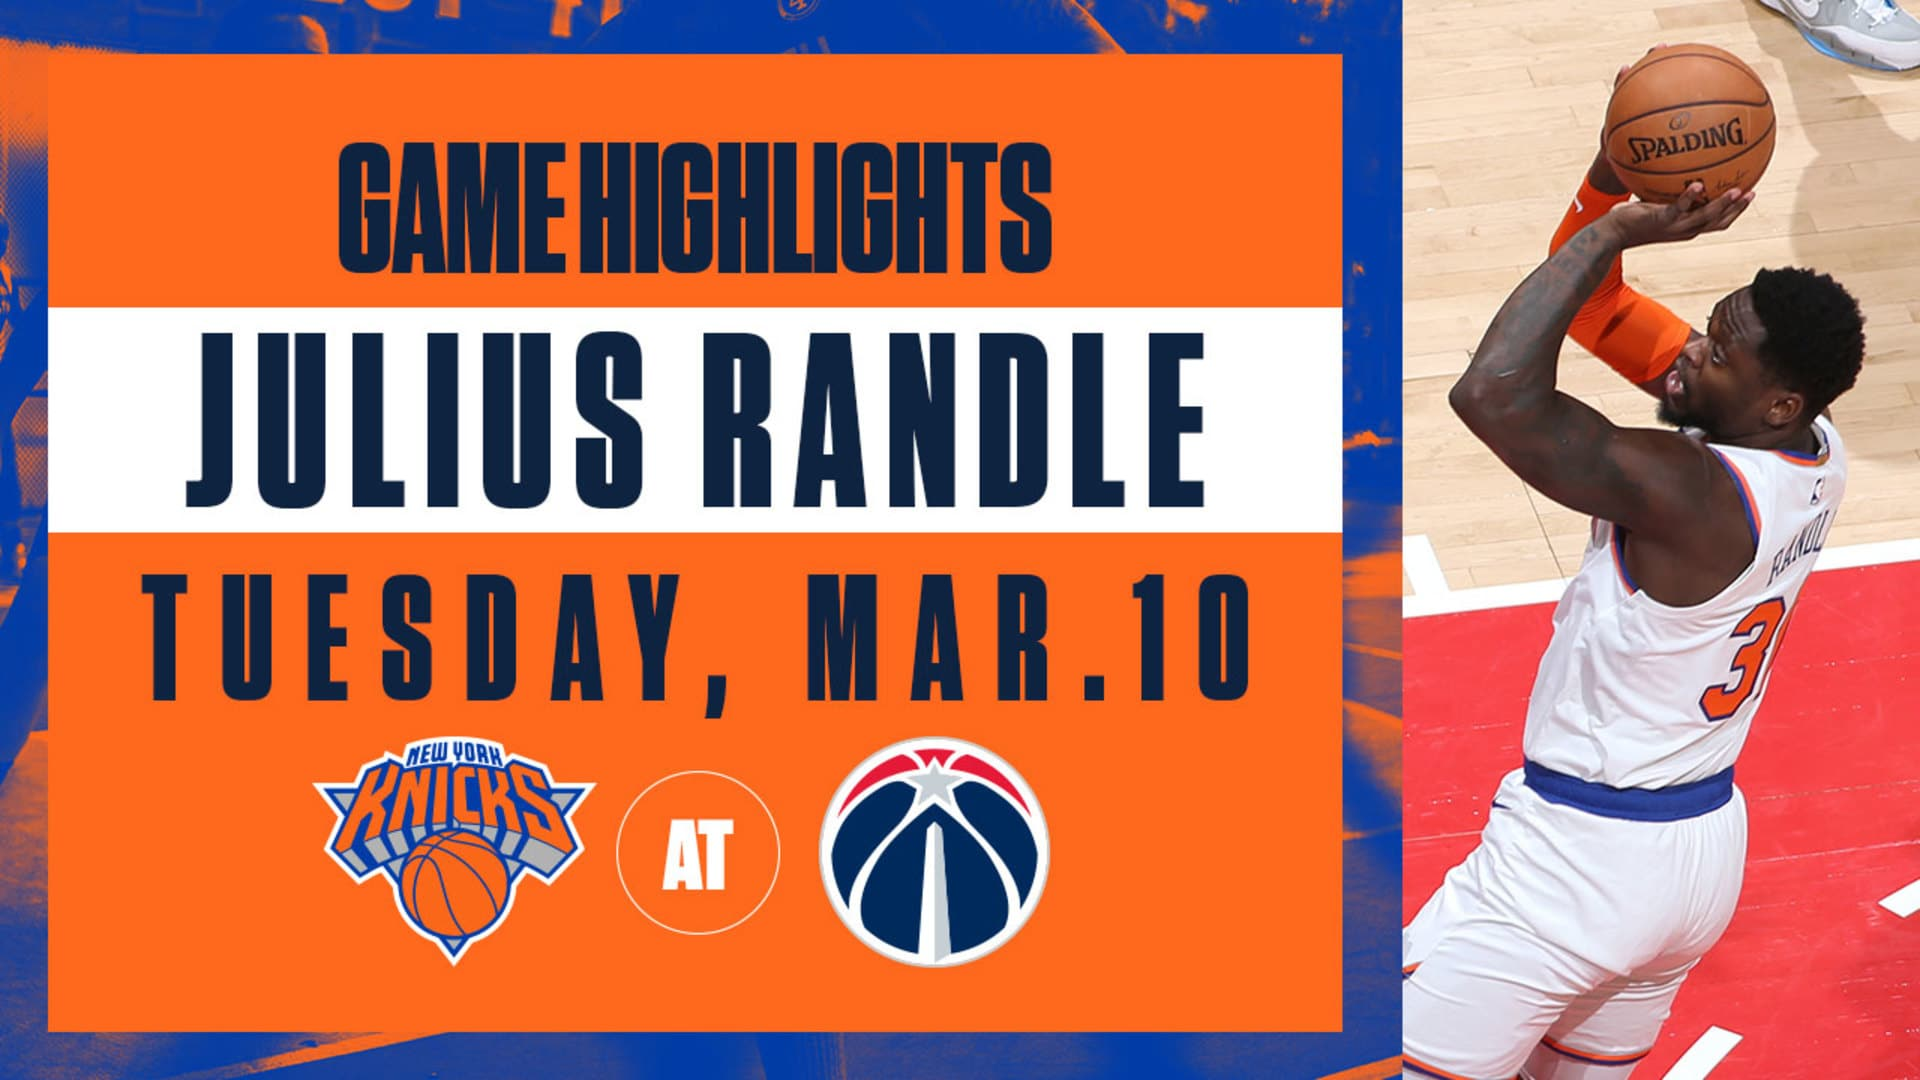 Highlights: Julius Randle (16 Points) | Knicks @ Wizards